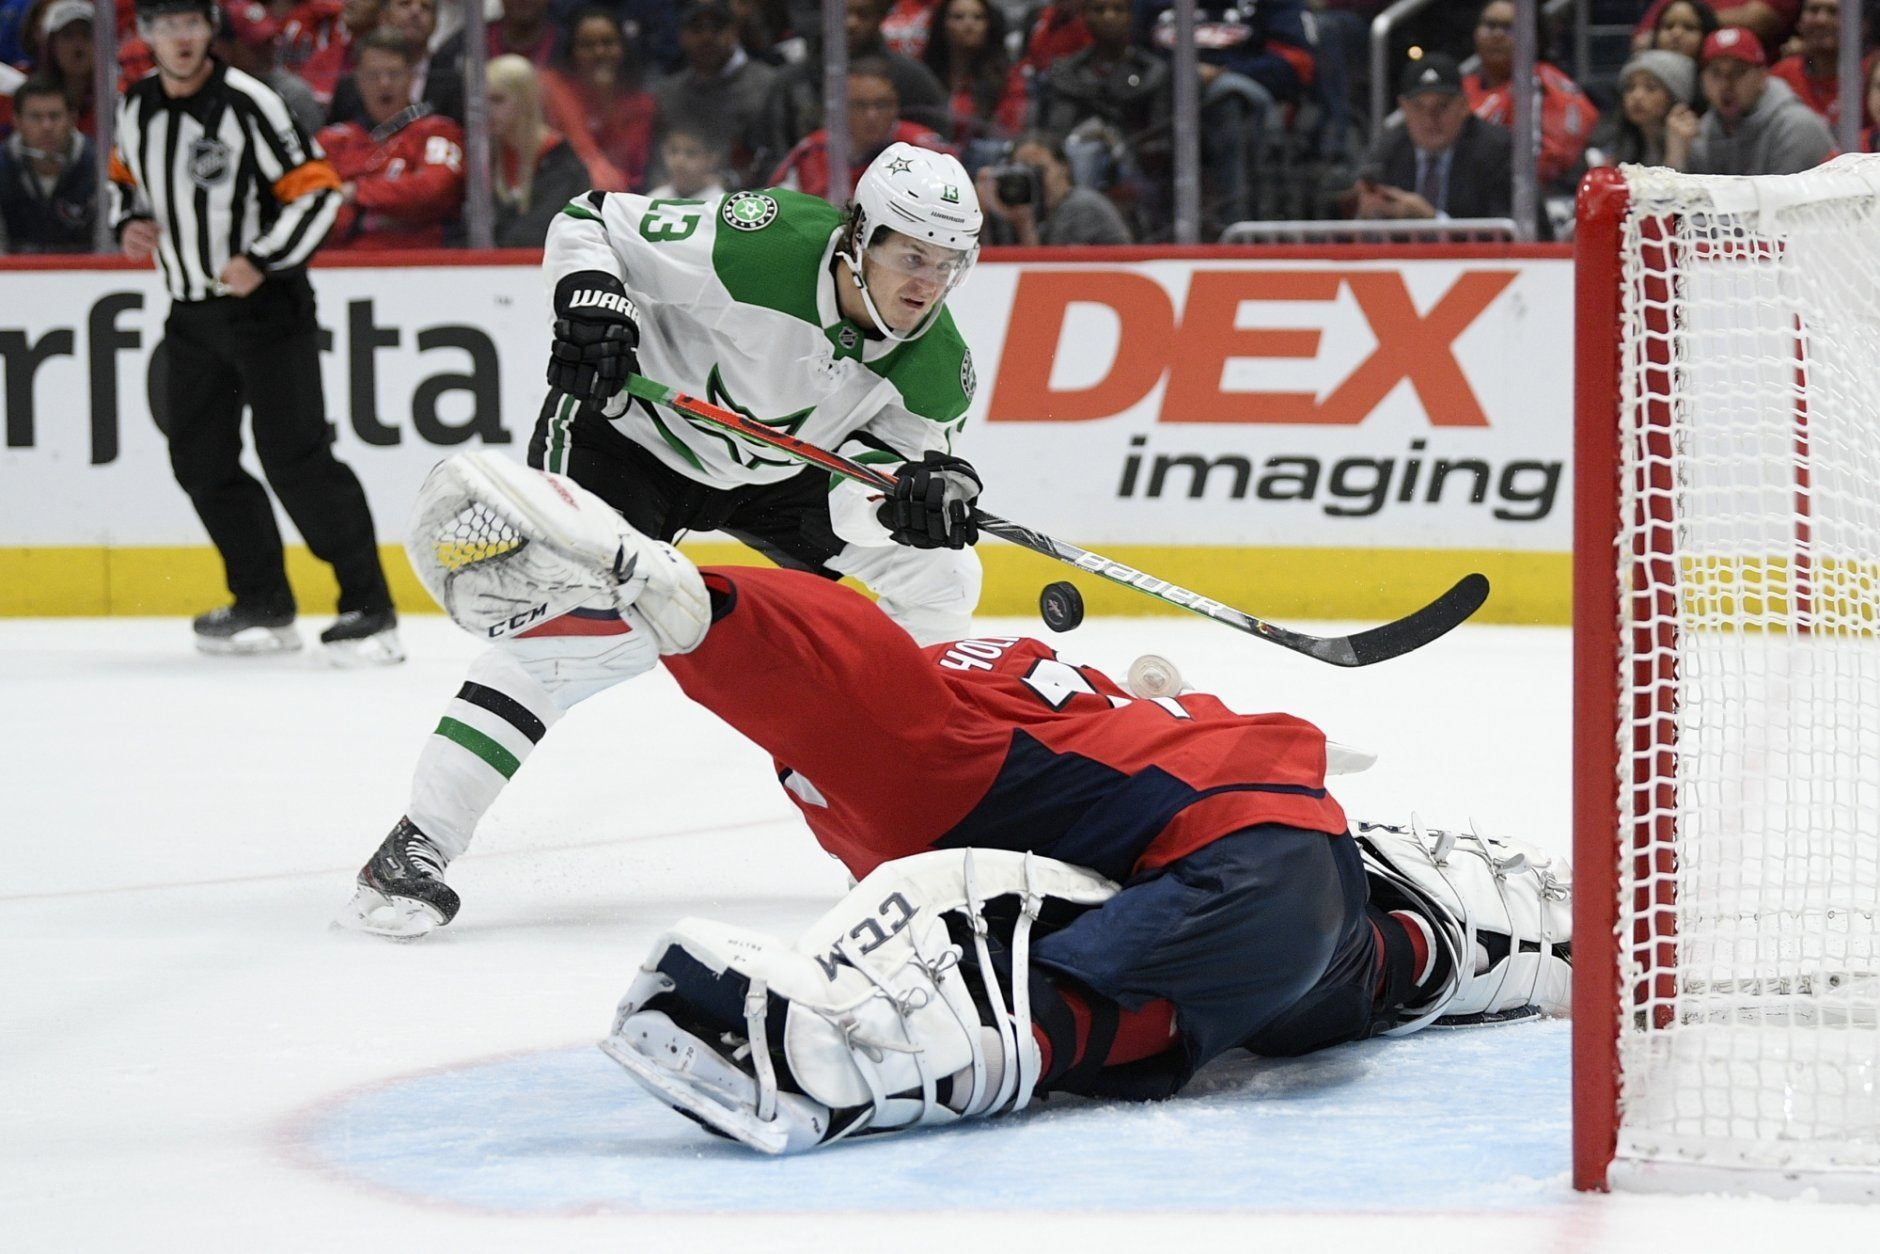 Washington Capitals goaltender Braden Holtby, bottom, stops the puck against Dallas Stars center Mattias Janmark (13), of Sweden, during the second period of an NHL hockey game Tuesday, Oct. 8, 2019, in Washington. (AP Photo/Nick Wass)